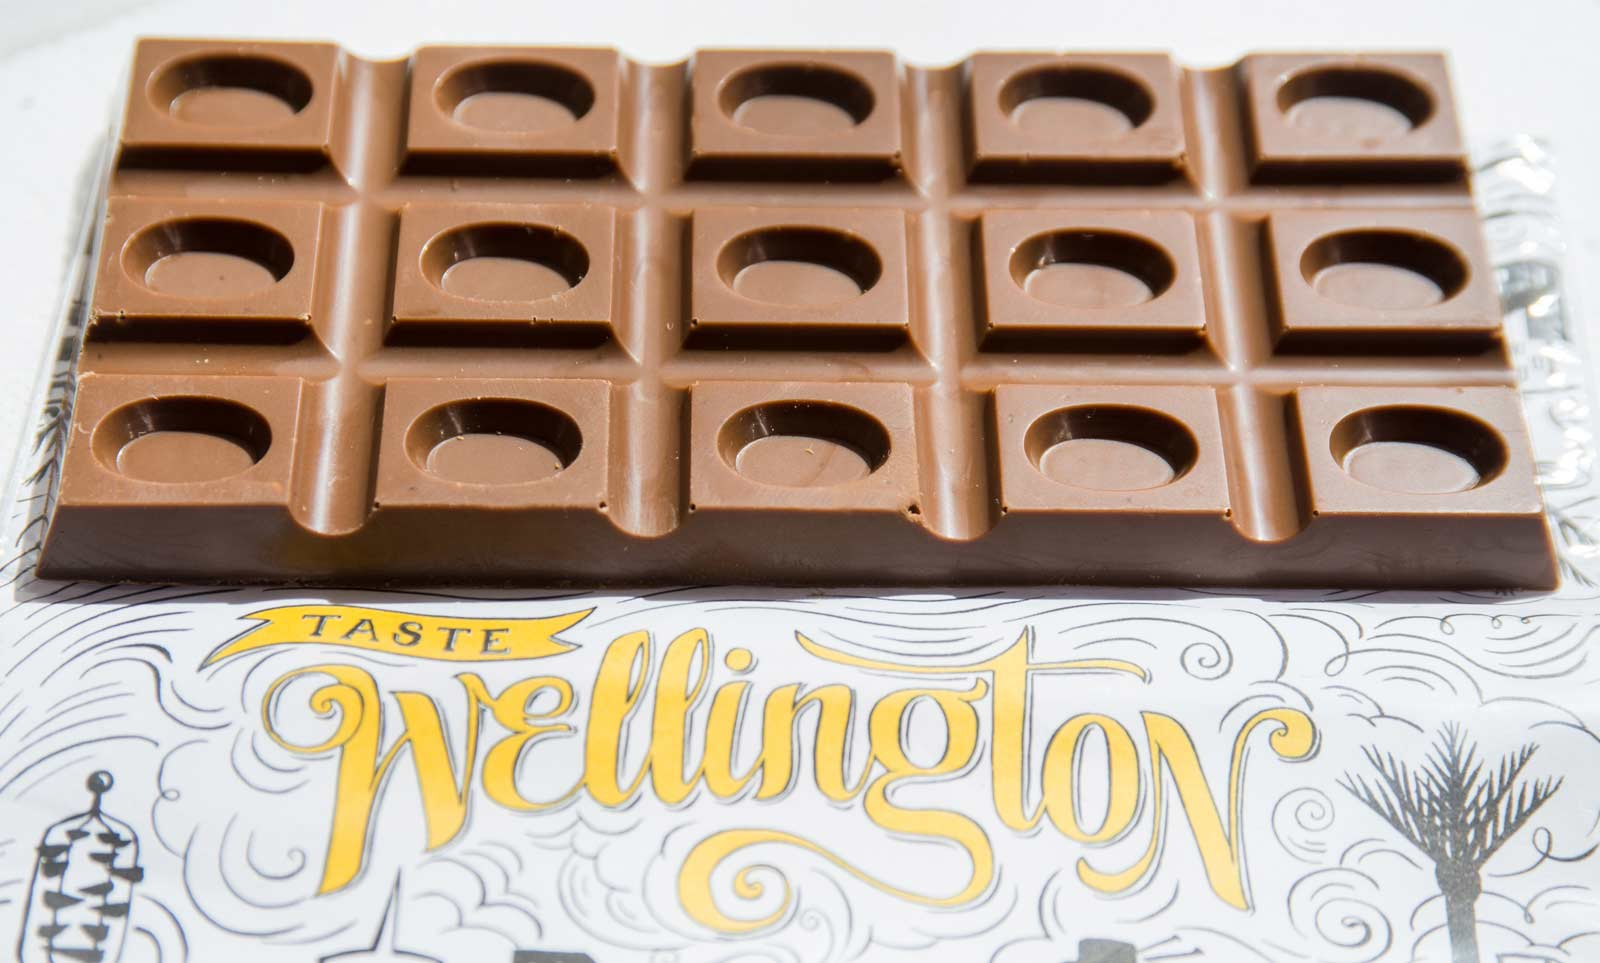 Taste Wellington Chocolate Tablet